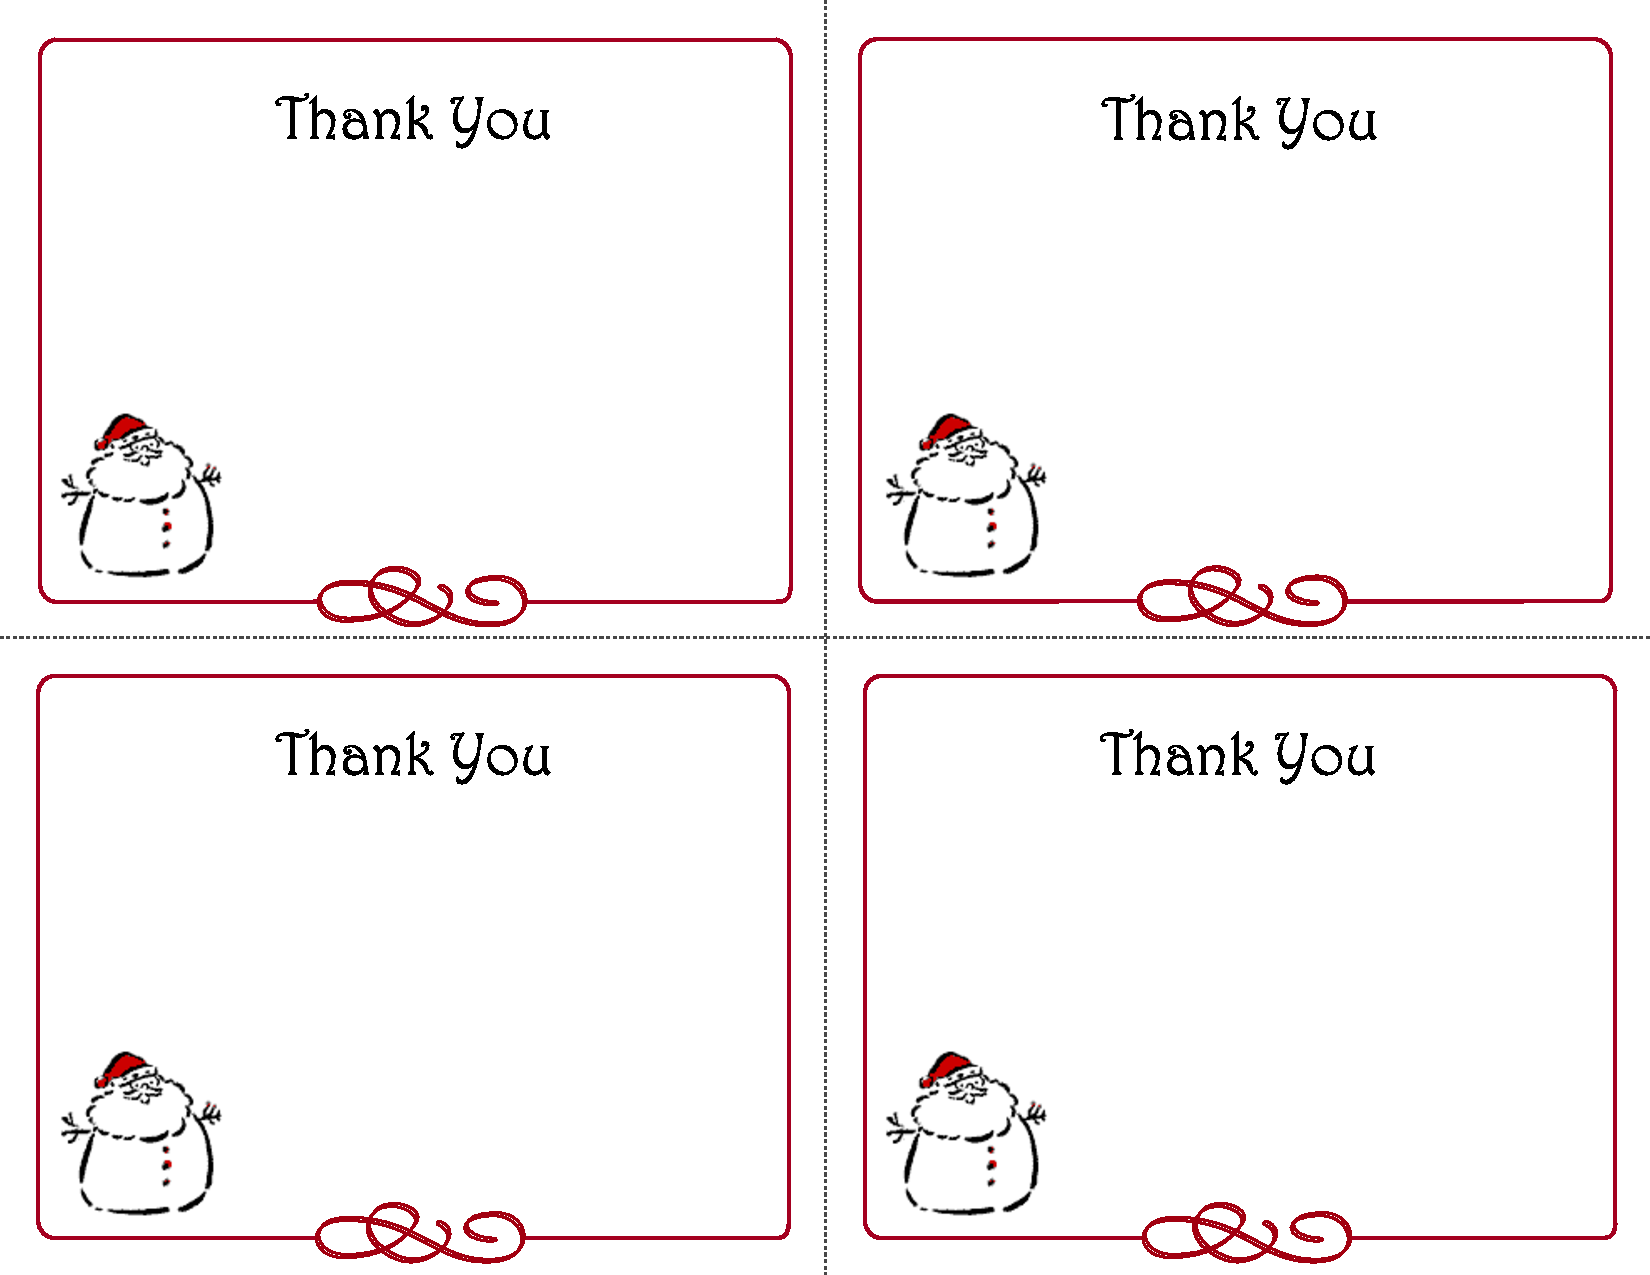 7 Images of Free Printable Holiday Thank You Cards